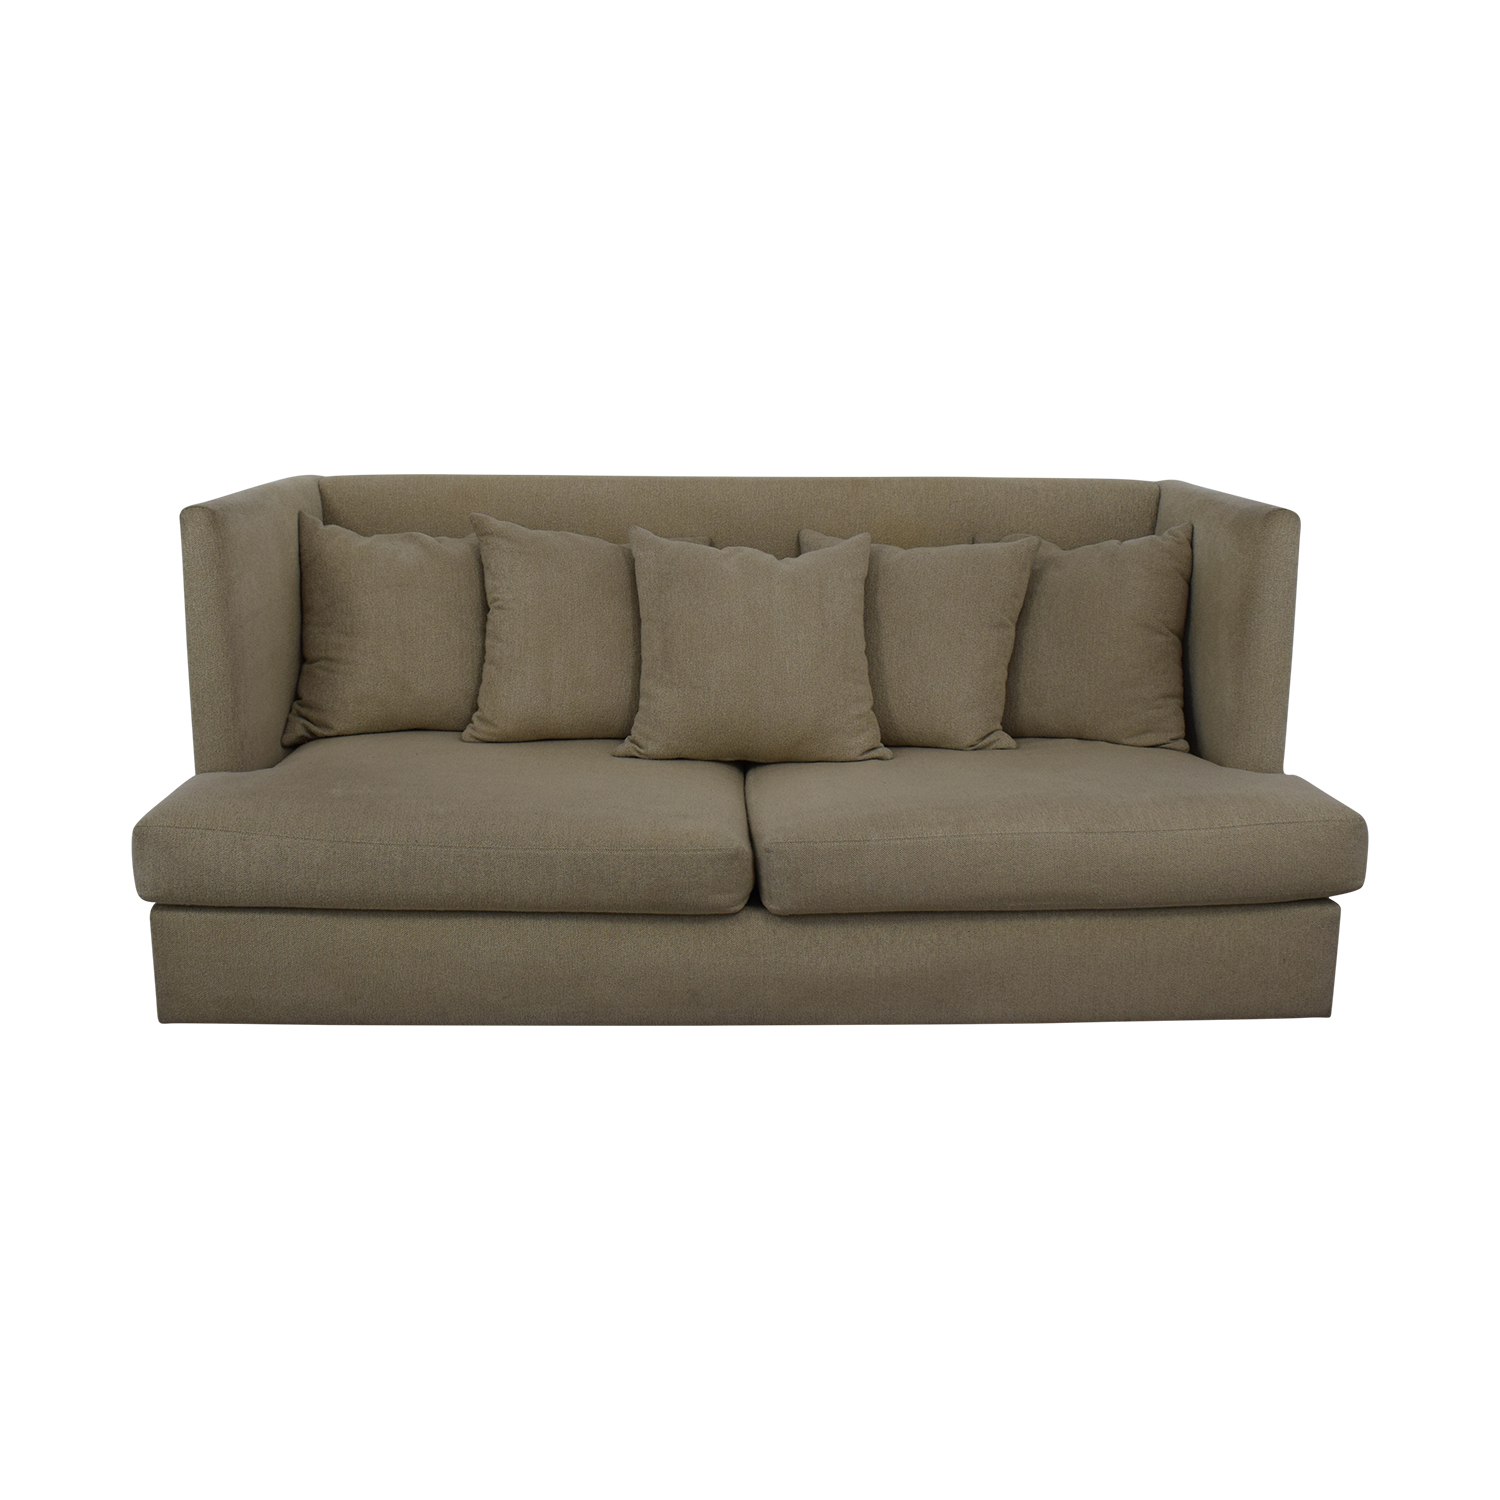 Crate & Barrel Crate & Barrel Milo Baughman Shelter Sofa Sofas